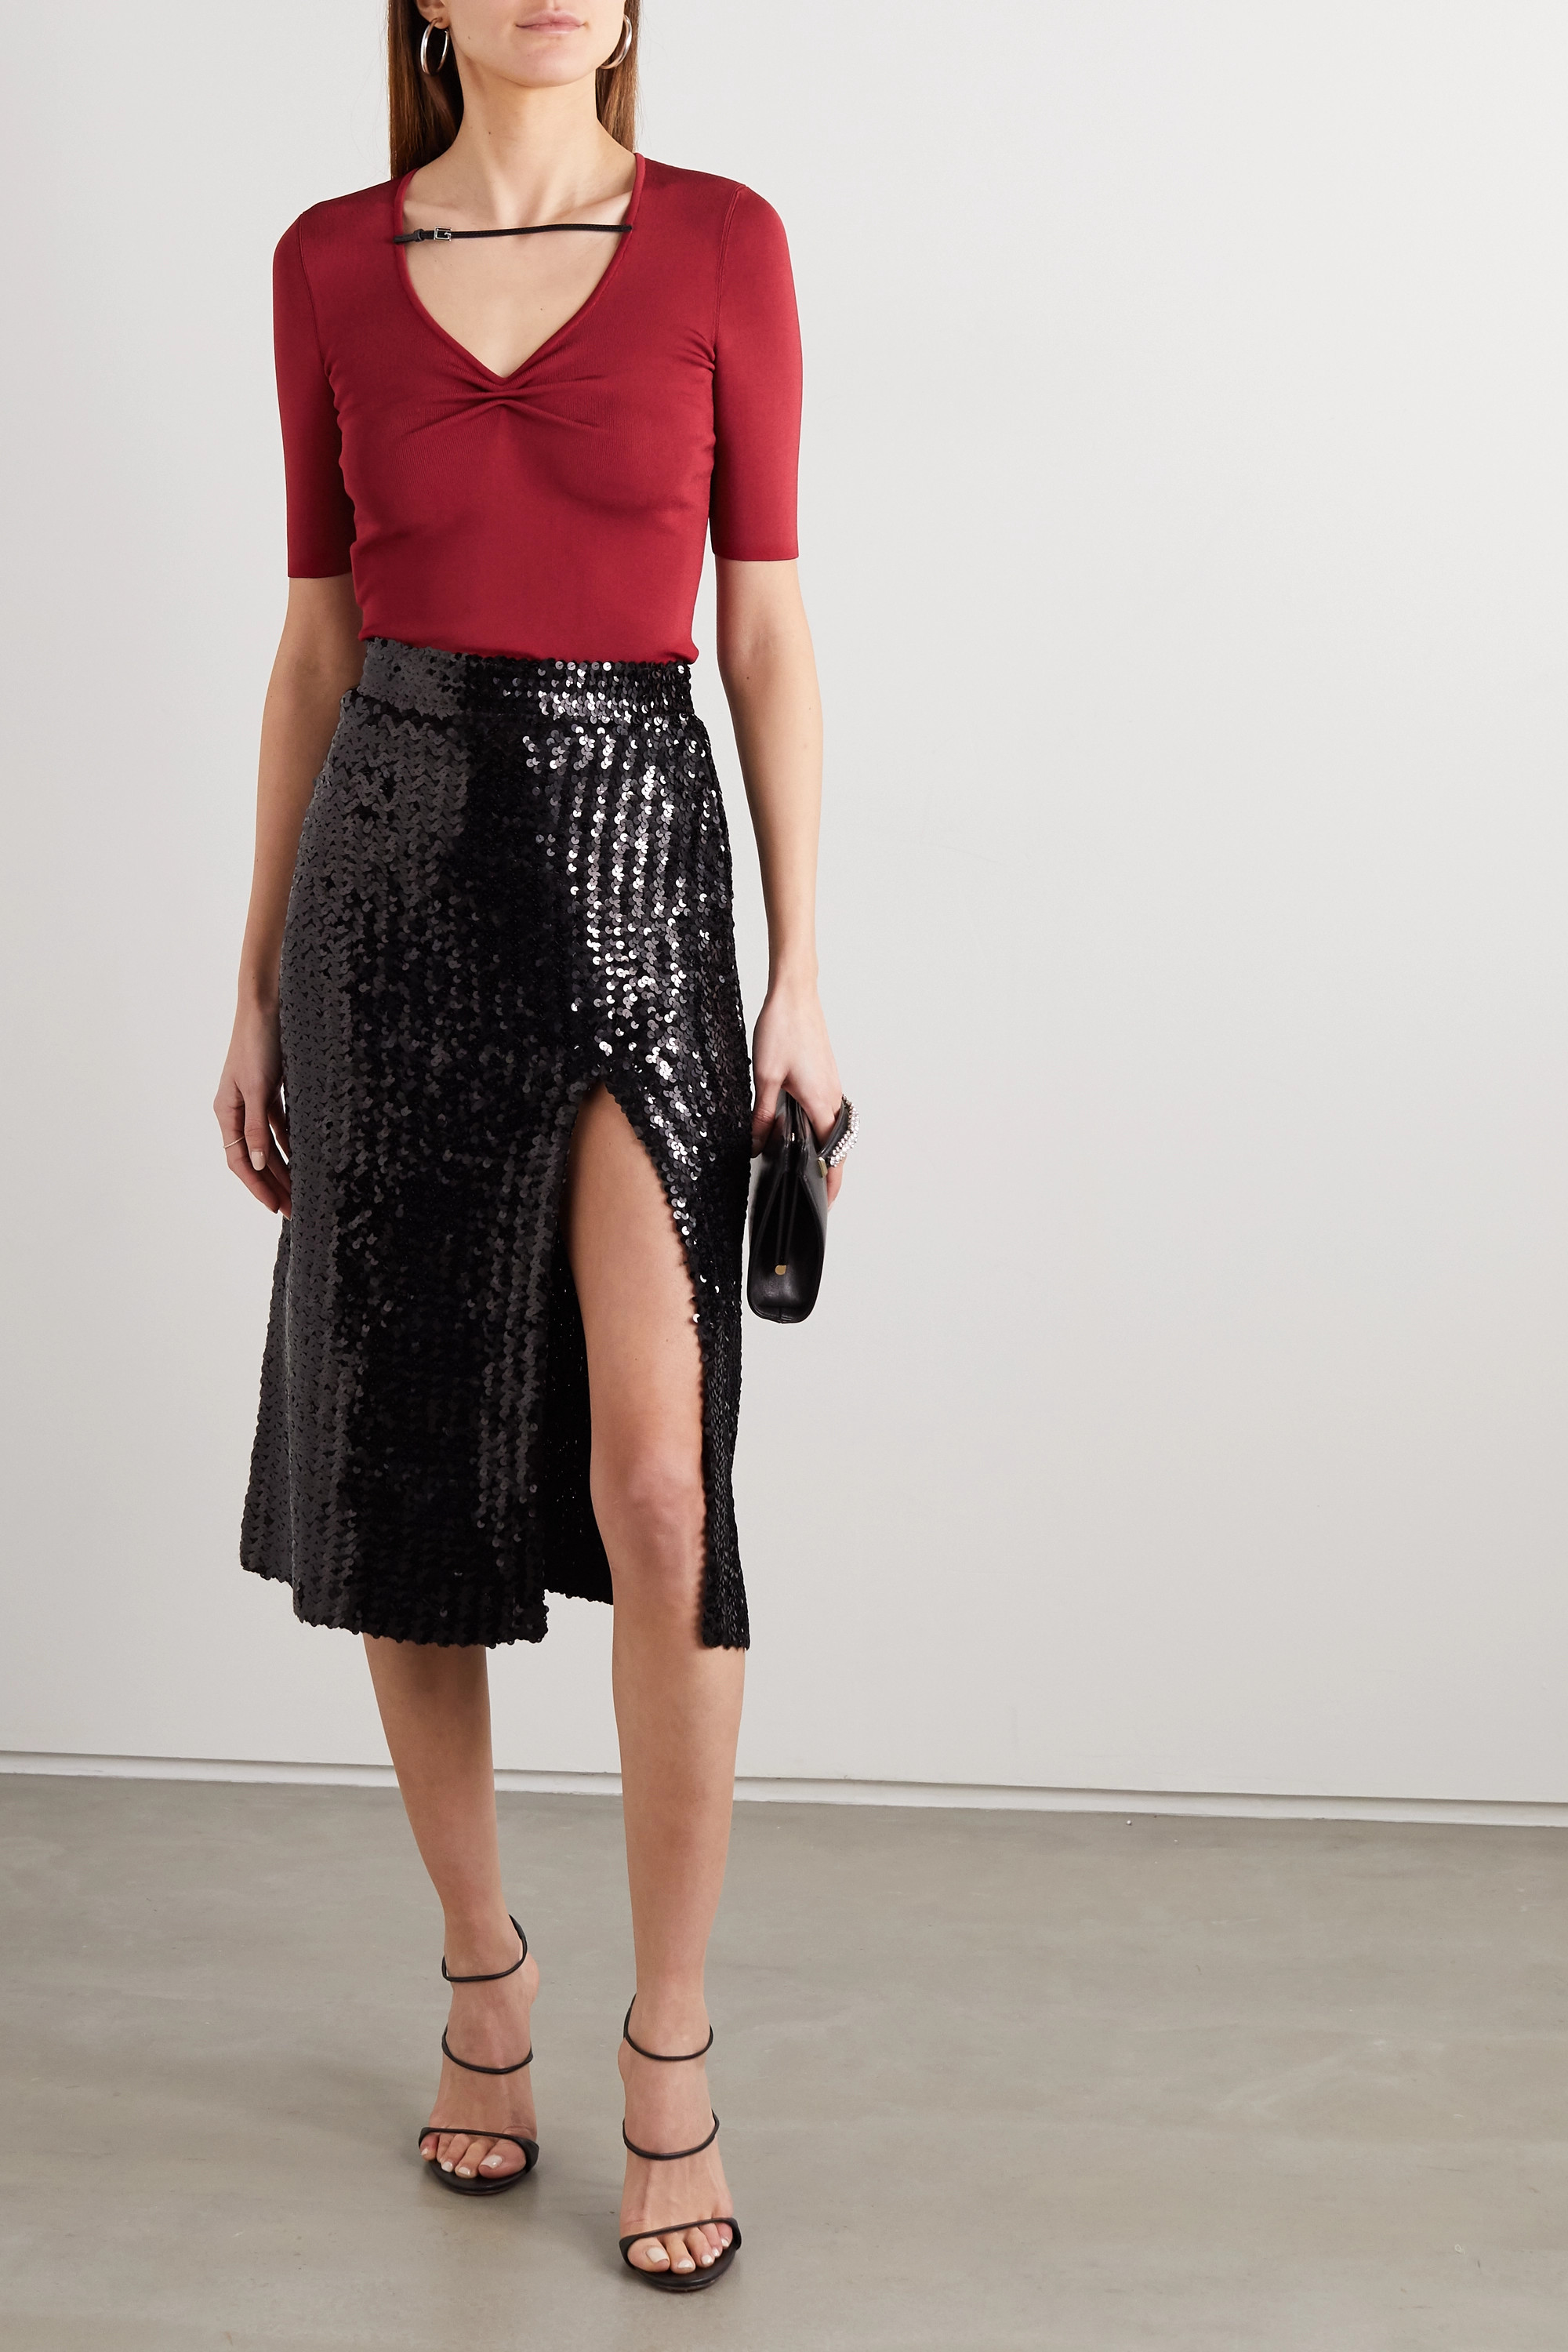 Gucci Gathered patent leather-trimmed stretch-knit top